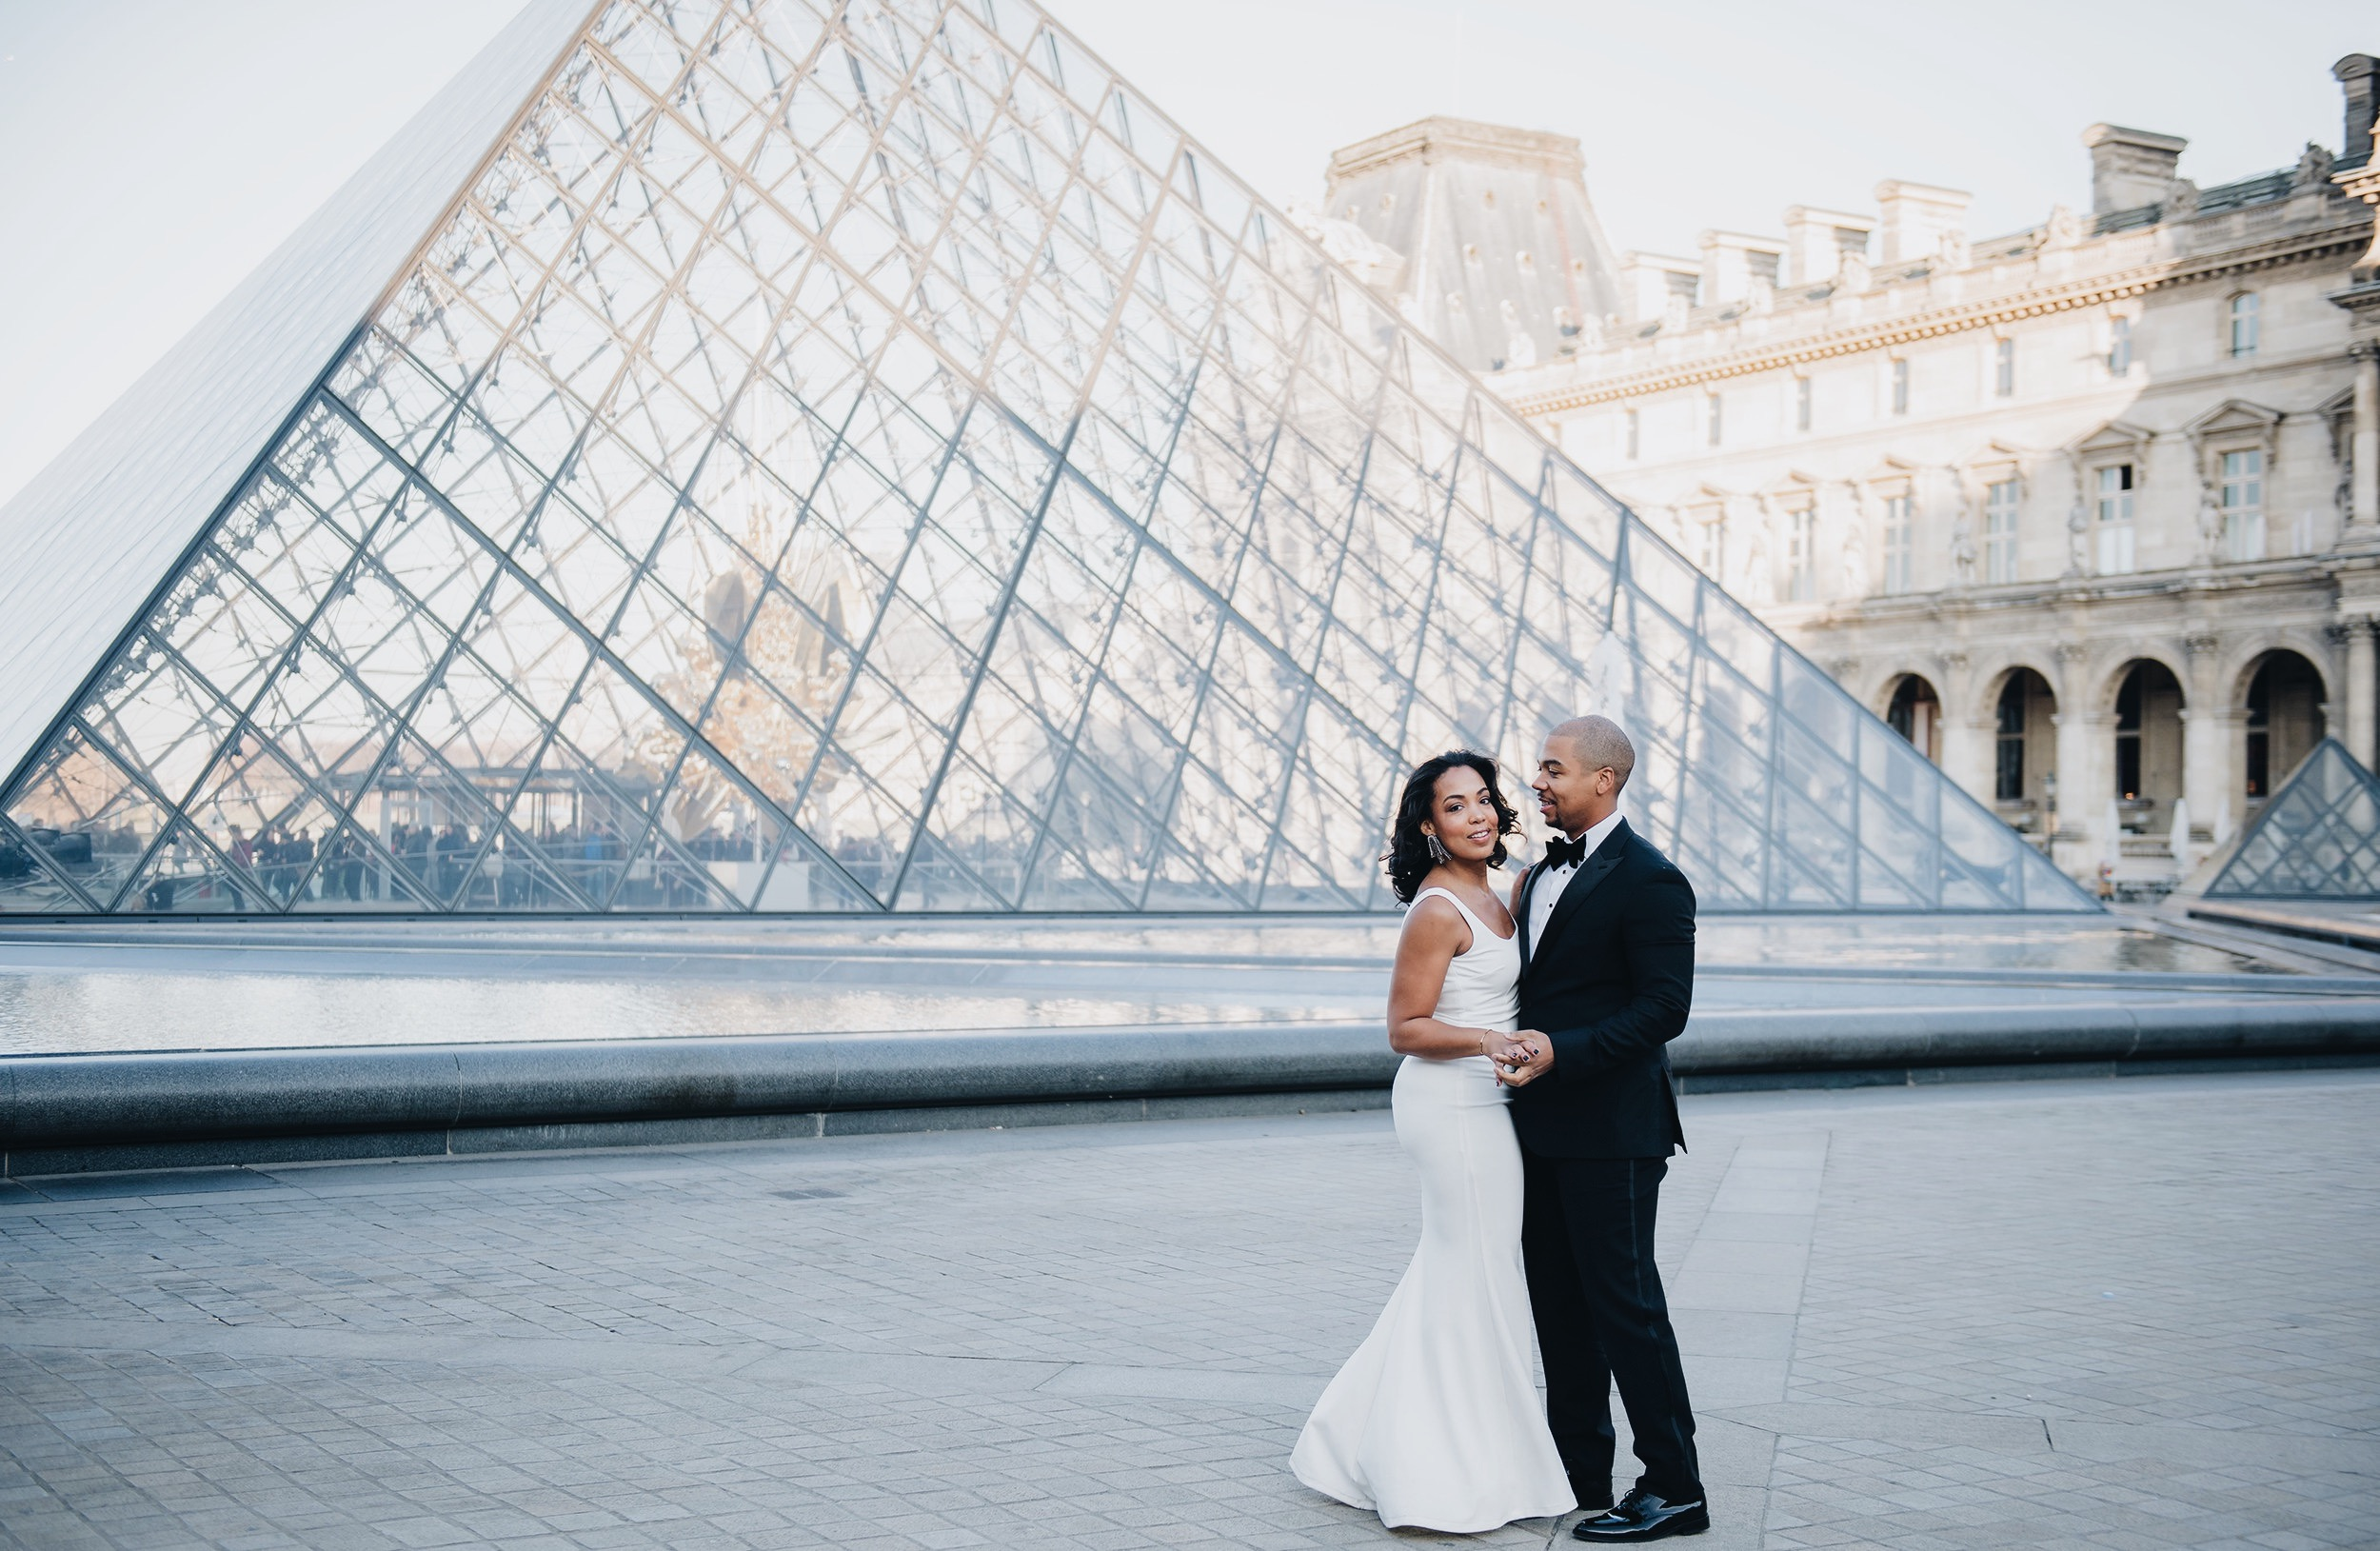 paris-engagement-session-the-louvre-katie-may-lucy-dress-anthropologie-bhldn-bridal-gown-bridesmaid-dress-the-black-tux-tuxedo-suit-rental-velvet-bow-tie-5.JPG